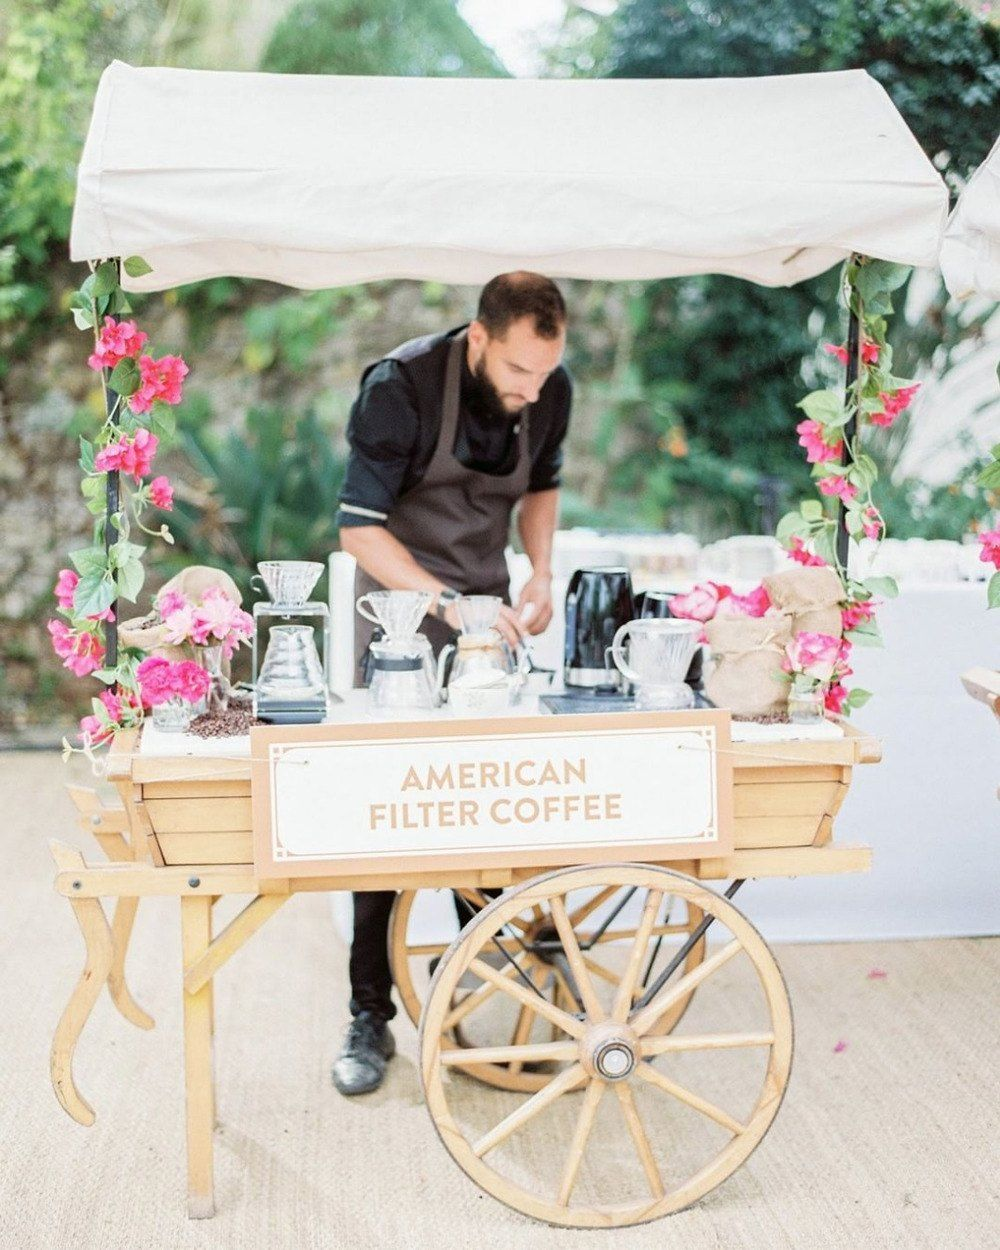 Fun Catering Ideas For Weddings: 8 Unique Wedding Entertainment Ideas To Wow Your Guests